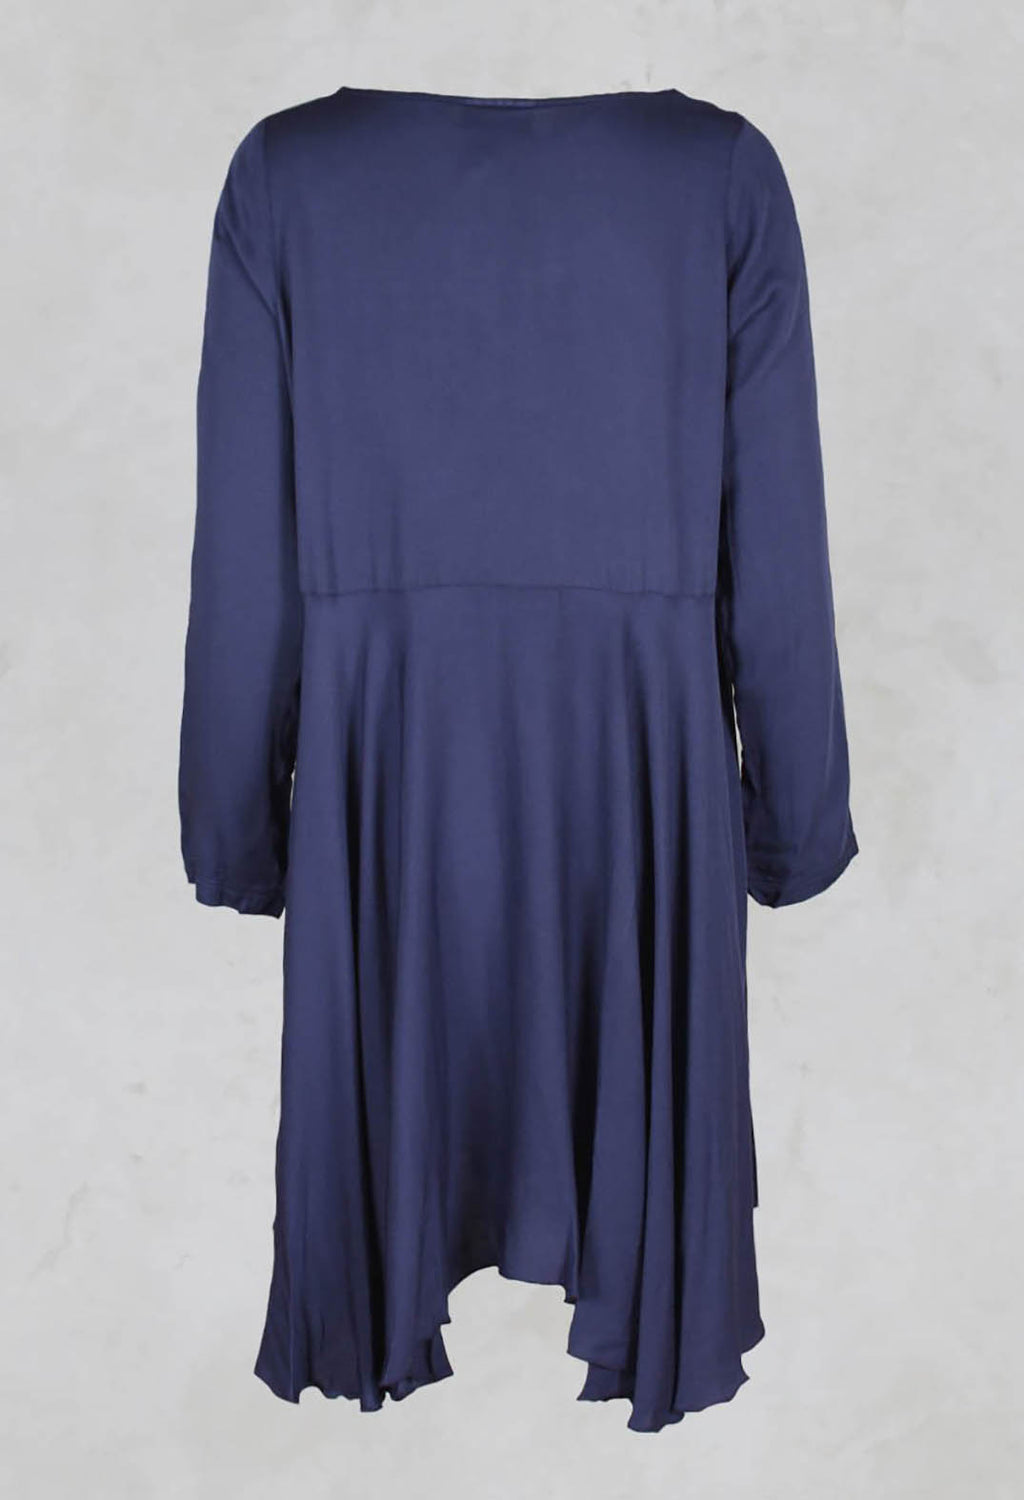 Drop Hem Tunic Dress in Plum